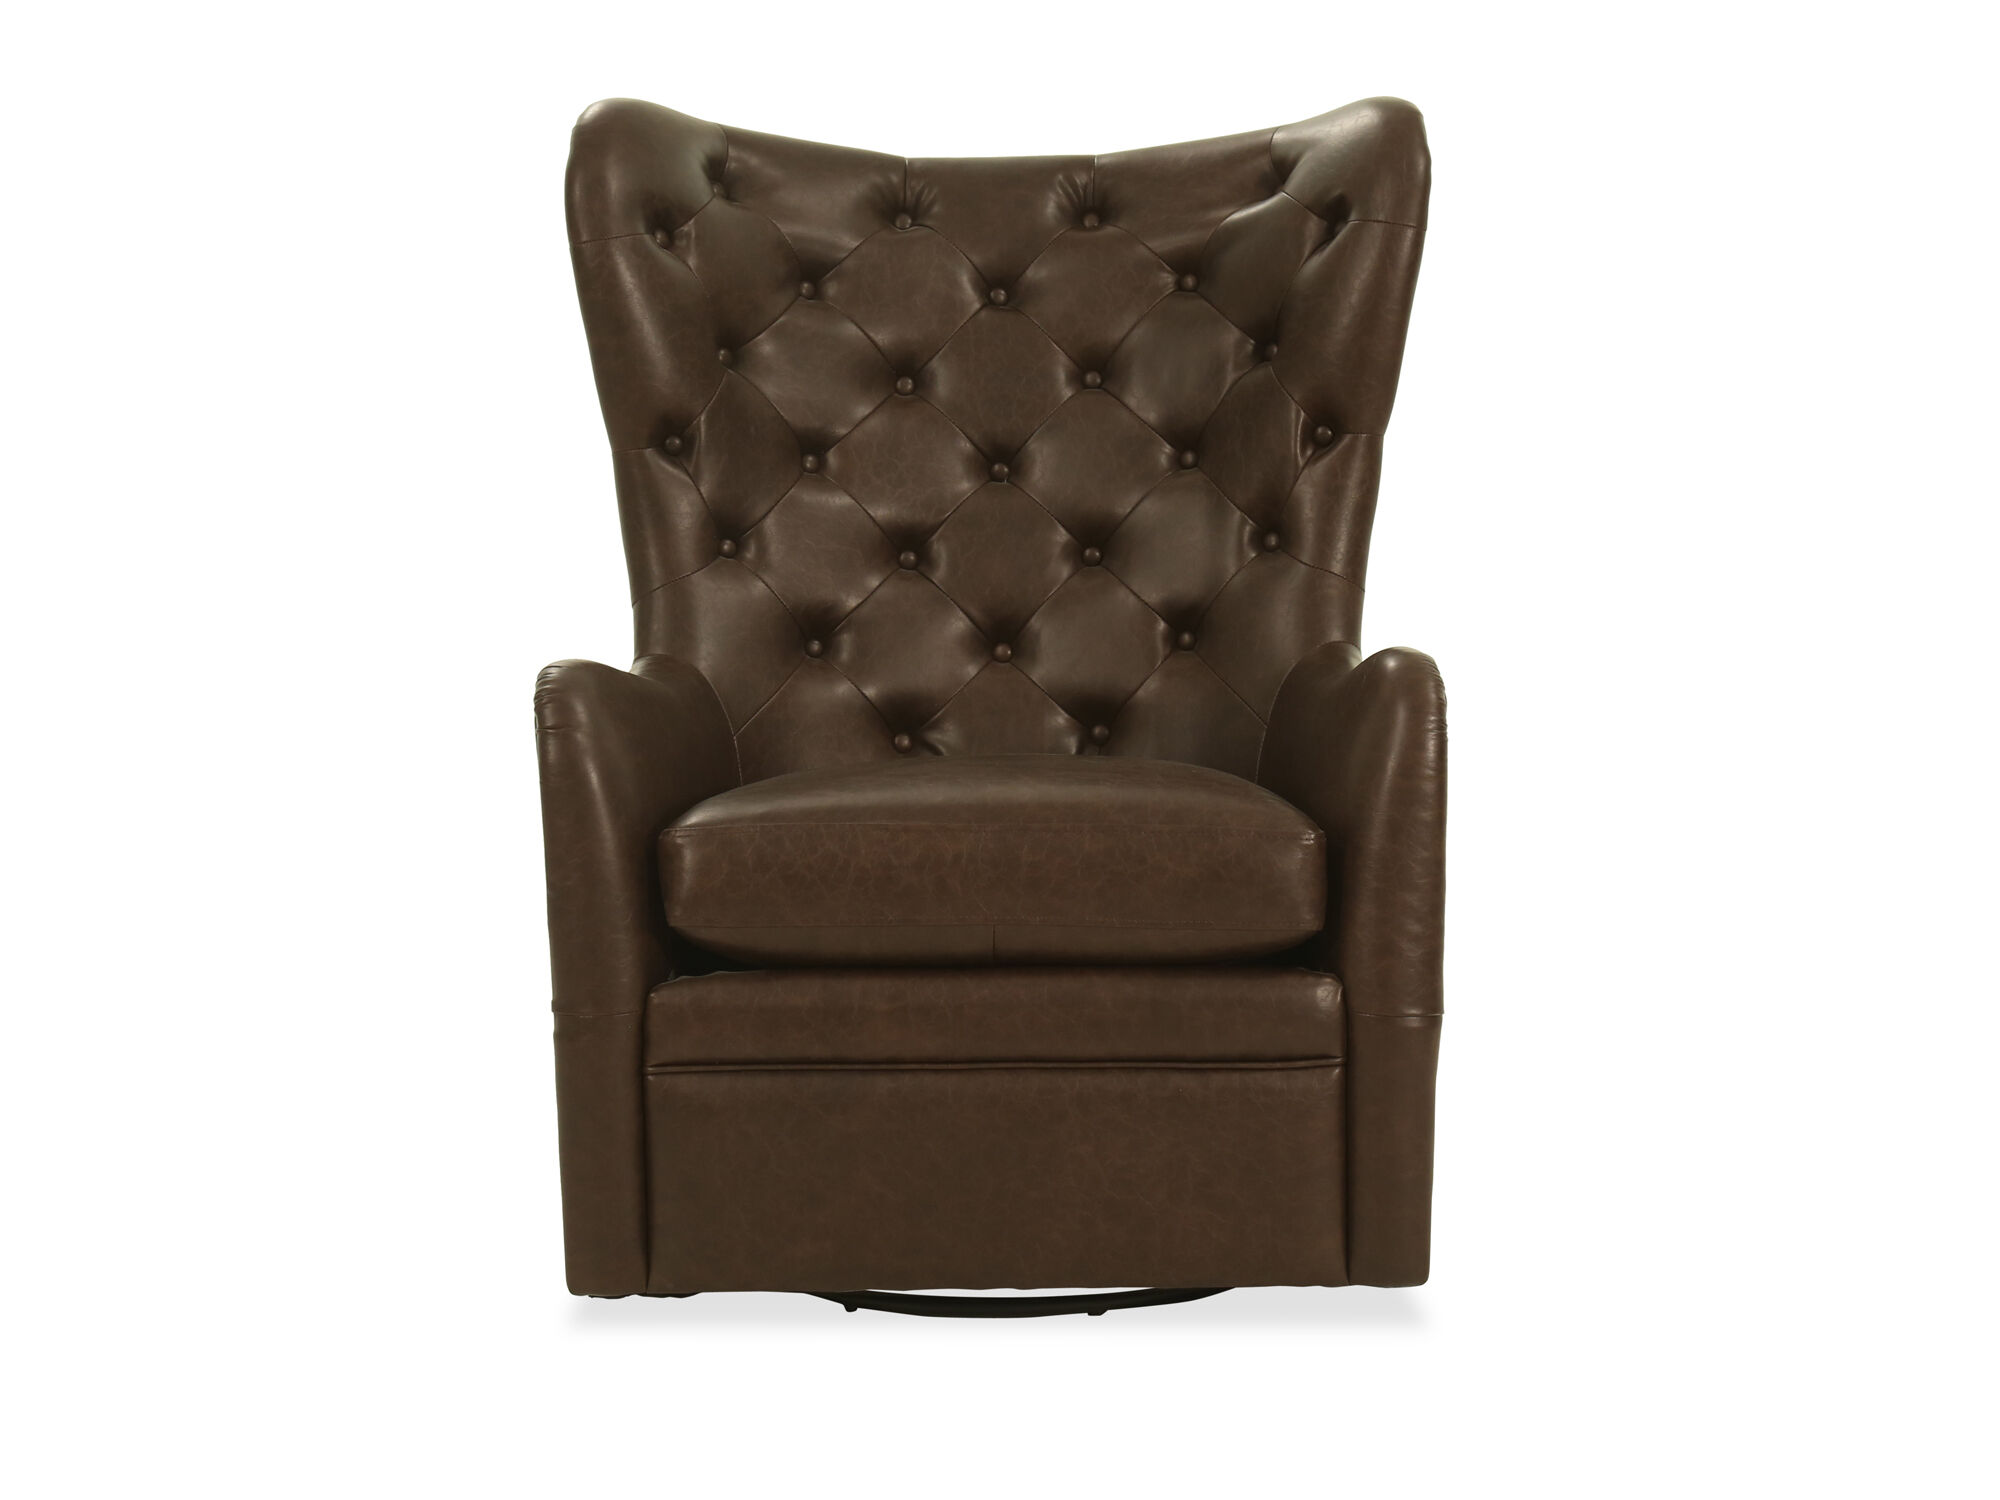 Attrayant Contemporary Leather Swivel Chair In Brown ...